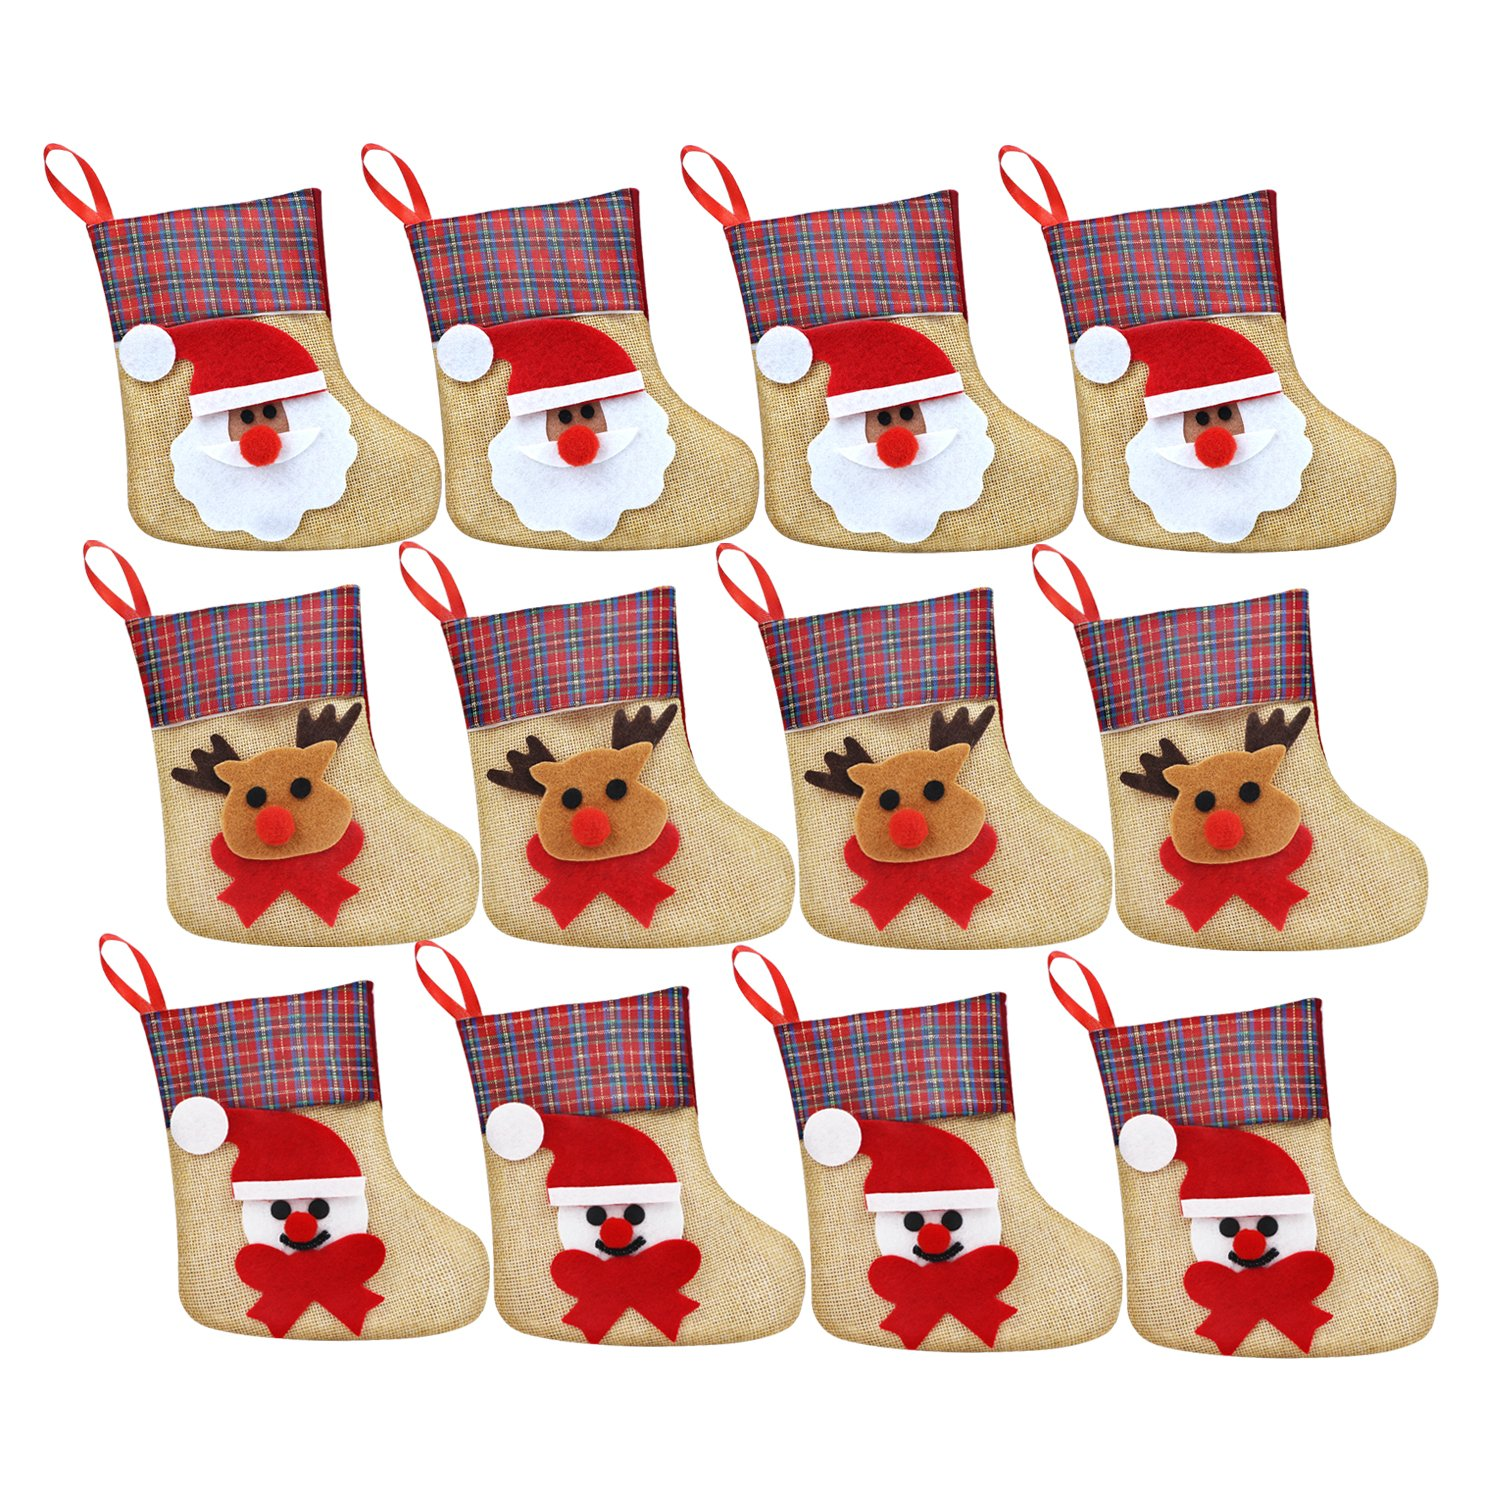 Womsky 12 Pcs 3D Mini Christmas Stockings Linen Burlap Silverware Holders Felt Rustic Plaid Tableware Bags Santa Snowman Reindeer Pattern Dinnerware Cover Christmas Decorations Xmas Party Ornament